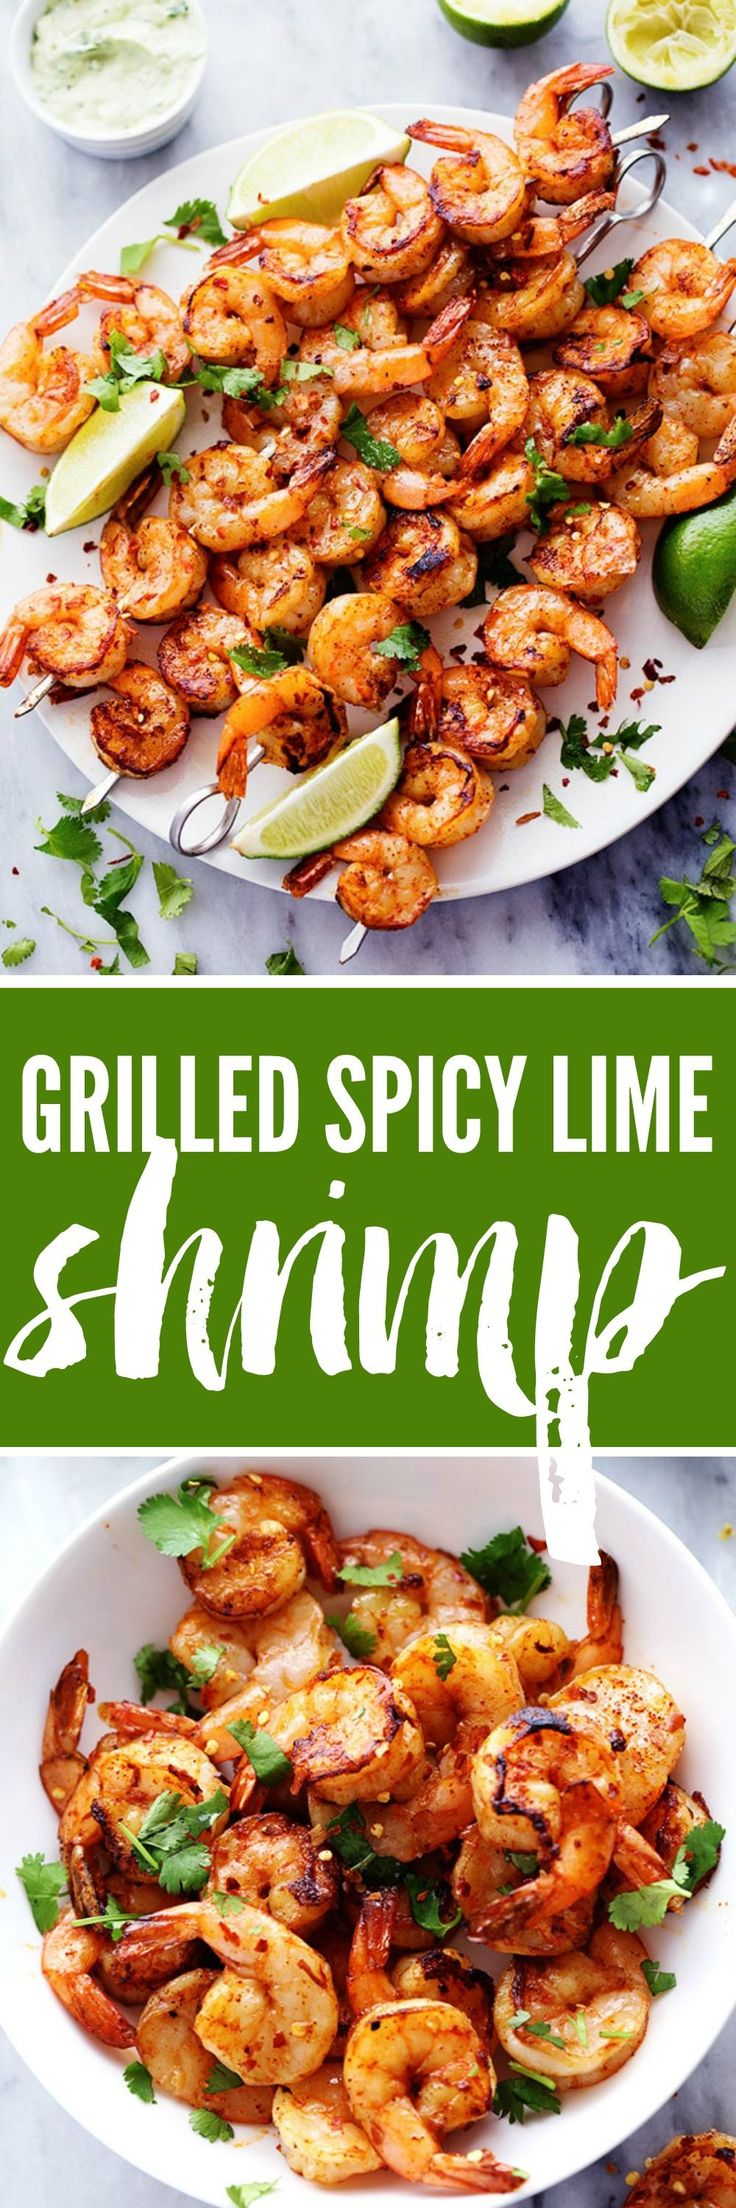 Grilled Spicy Lime Shrimp with Creamy Avocado Cilantro Sauce has a simple but…